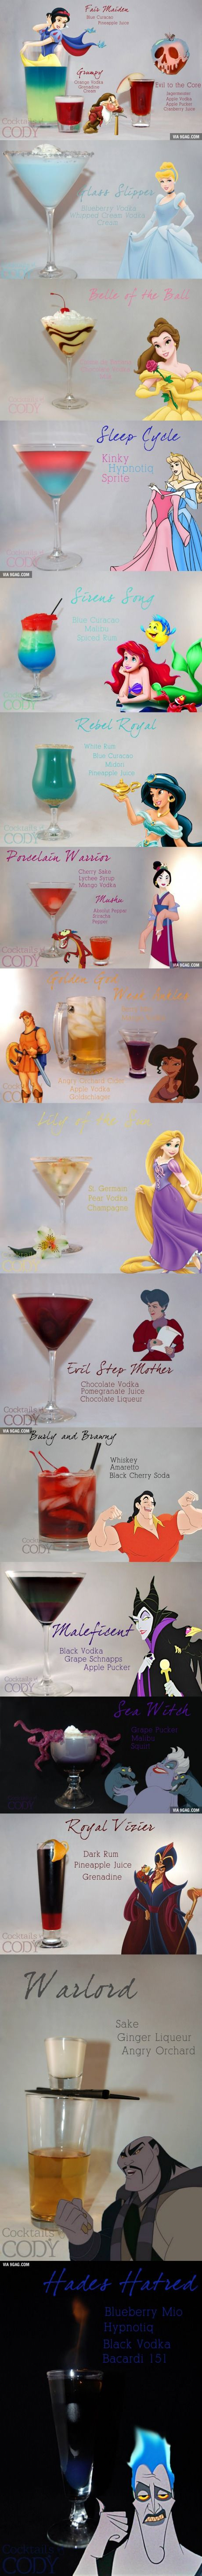 29 Disney Themed Cocktails You Will Want To Try - Interesting concept, could potentially do something with Nintendo characters on this same idea.